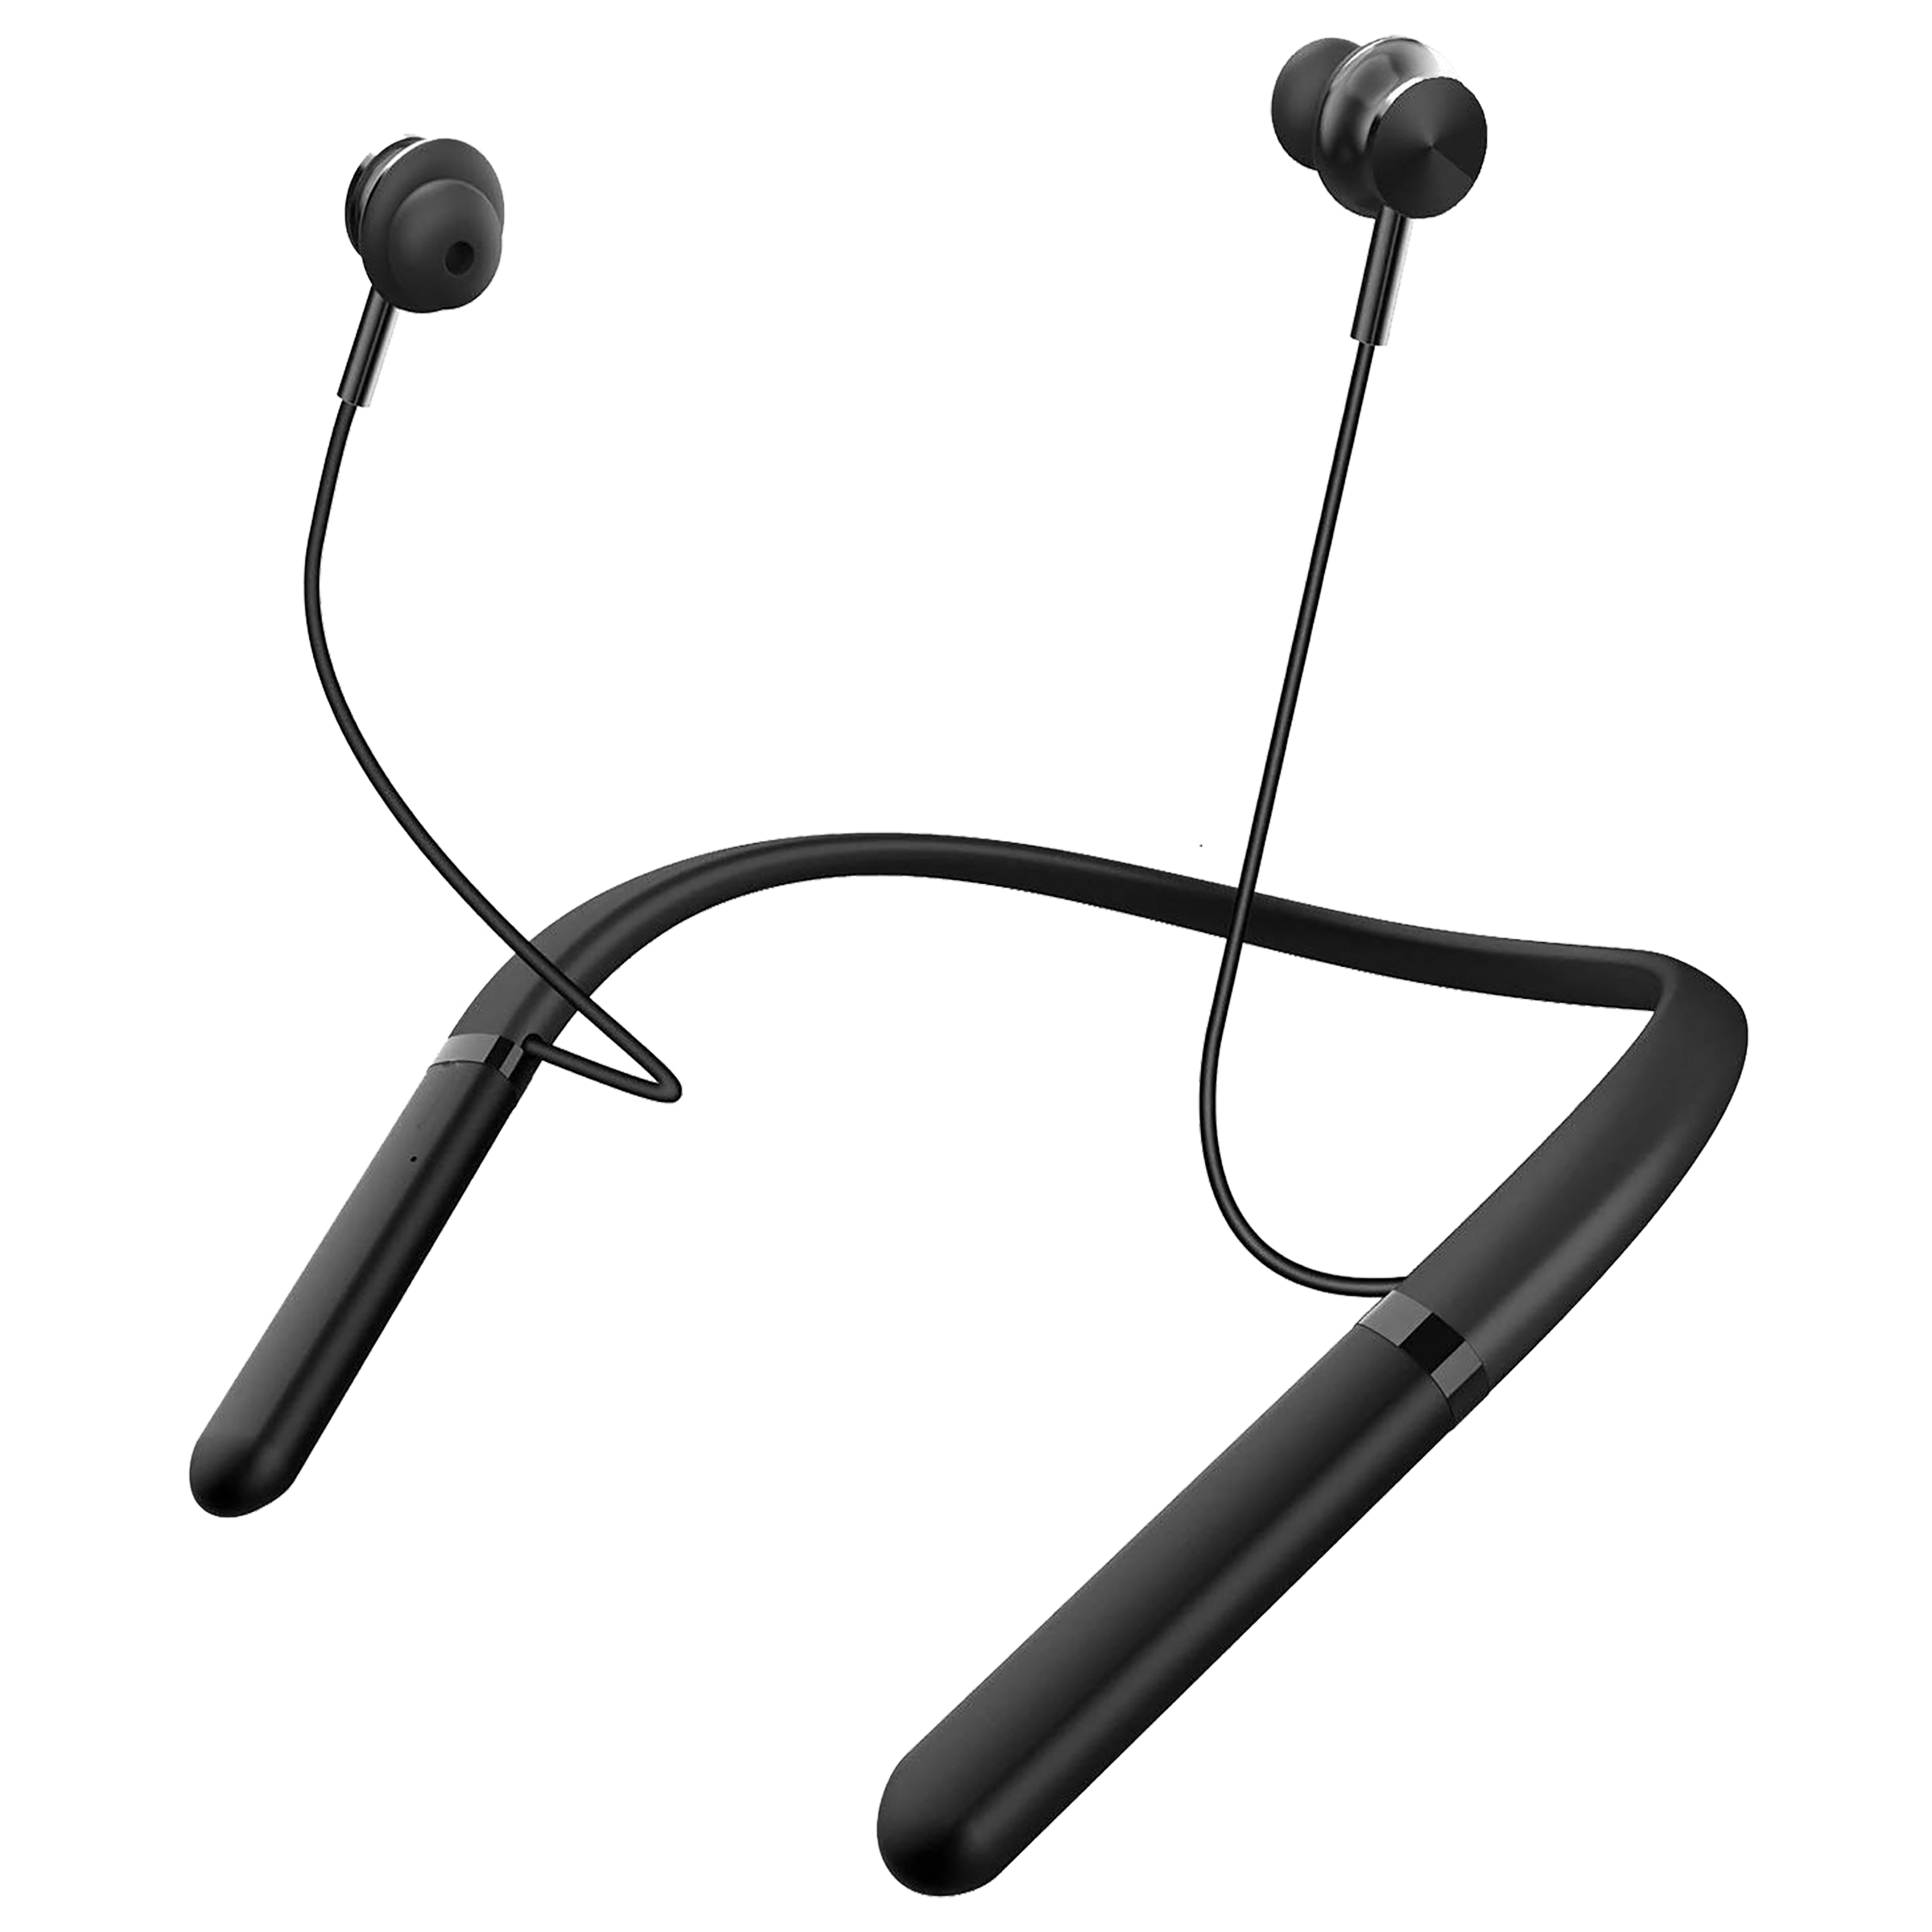 Soopii In-Ear Noise Isolation Wireless Earphone with Mic (Bluetooth 5.0, Water Resistant, B300, Black)_1